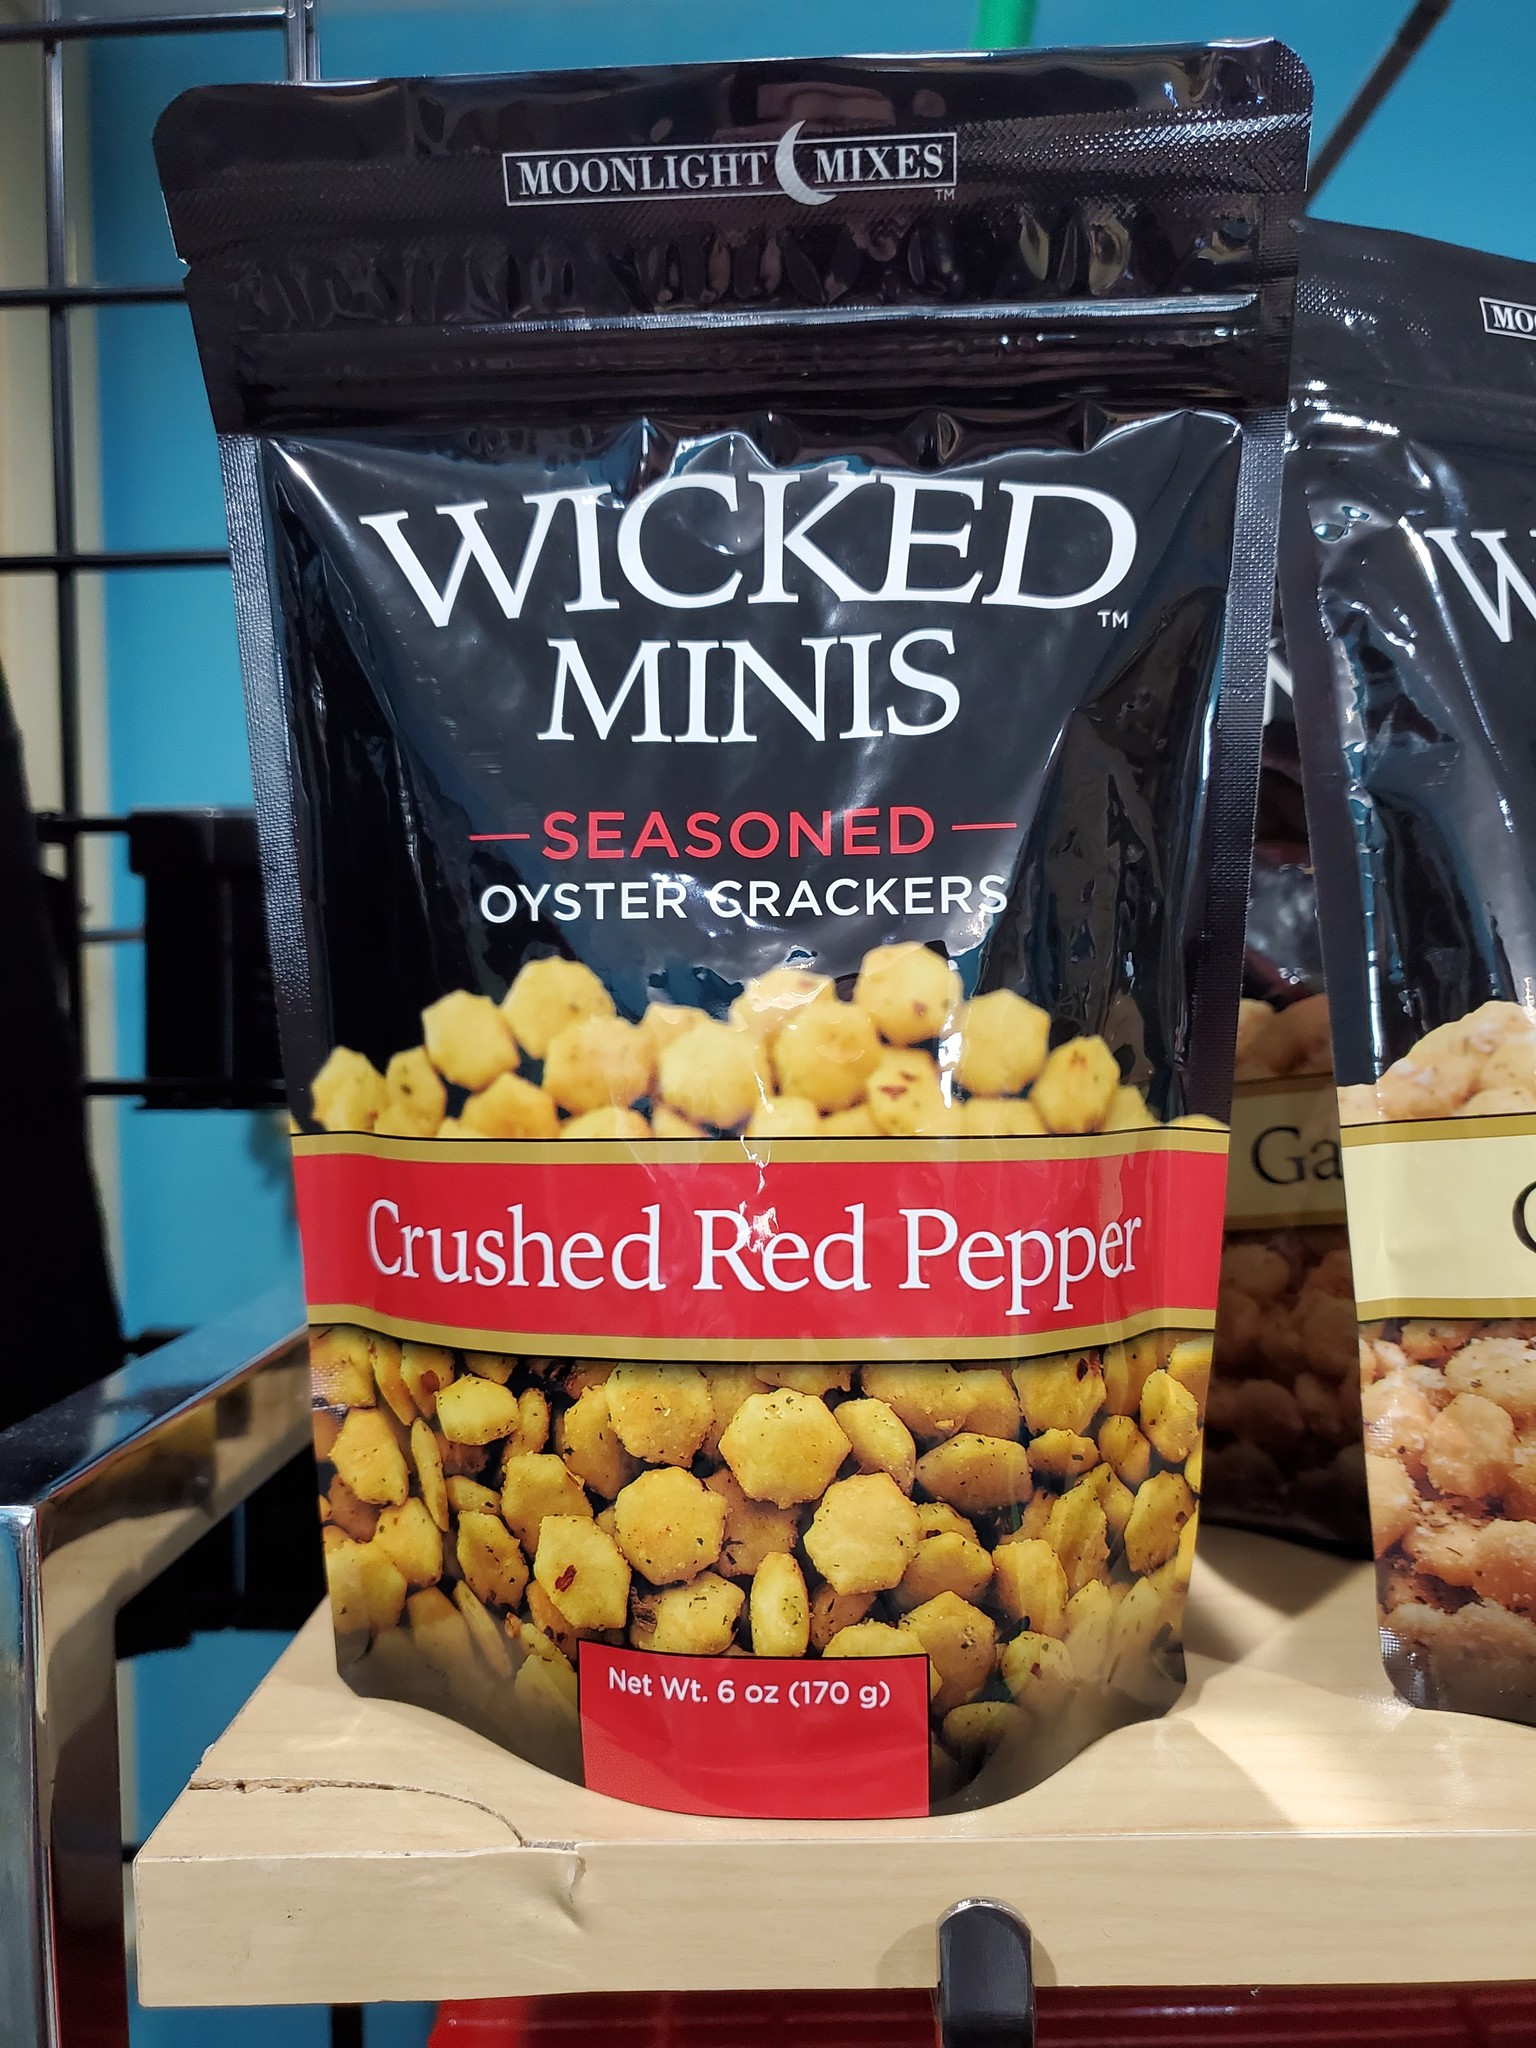 Moonlight Mixes Wicked Mini's Red Pepper